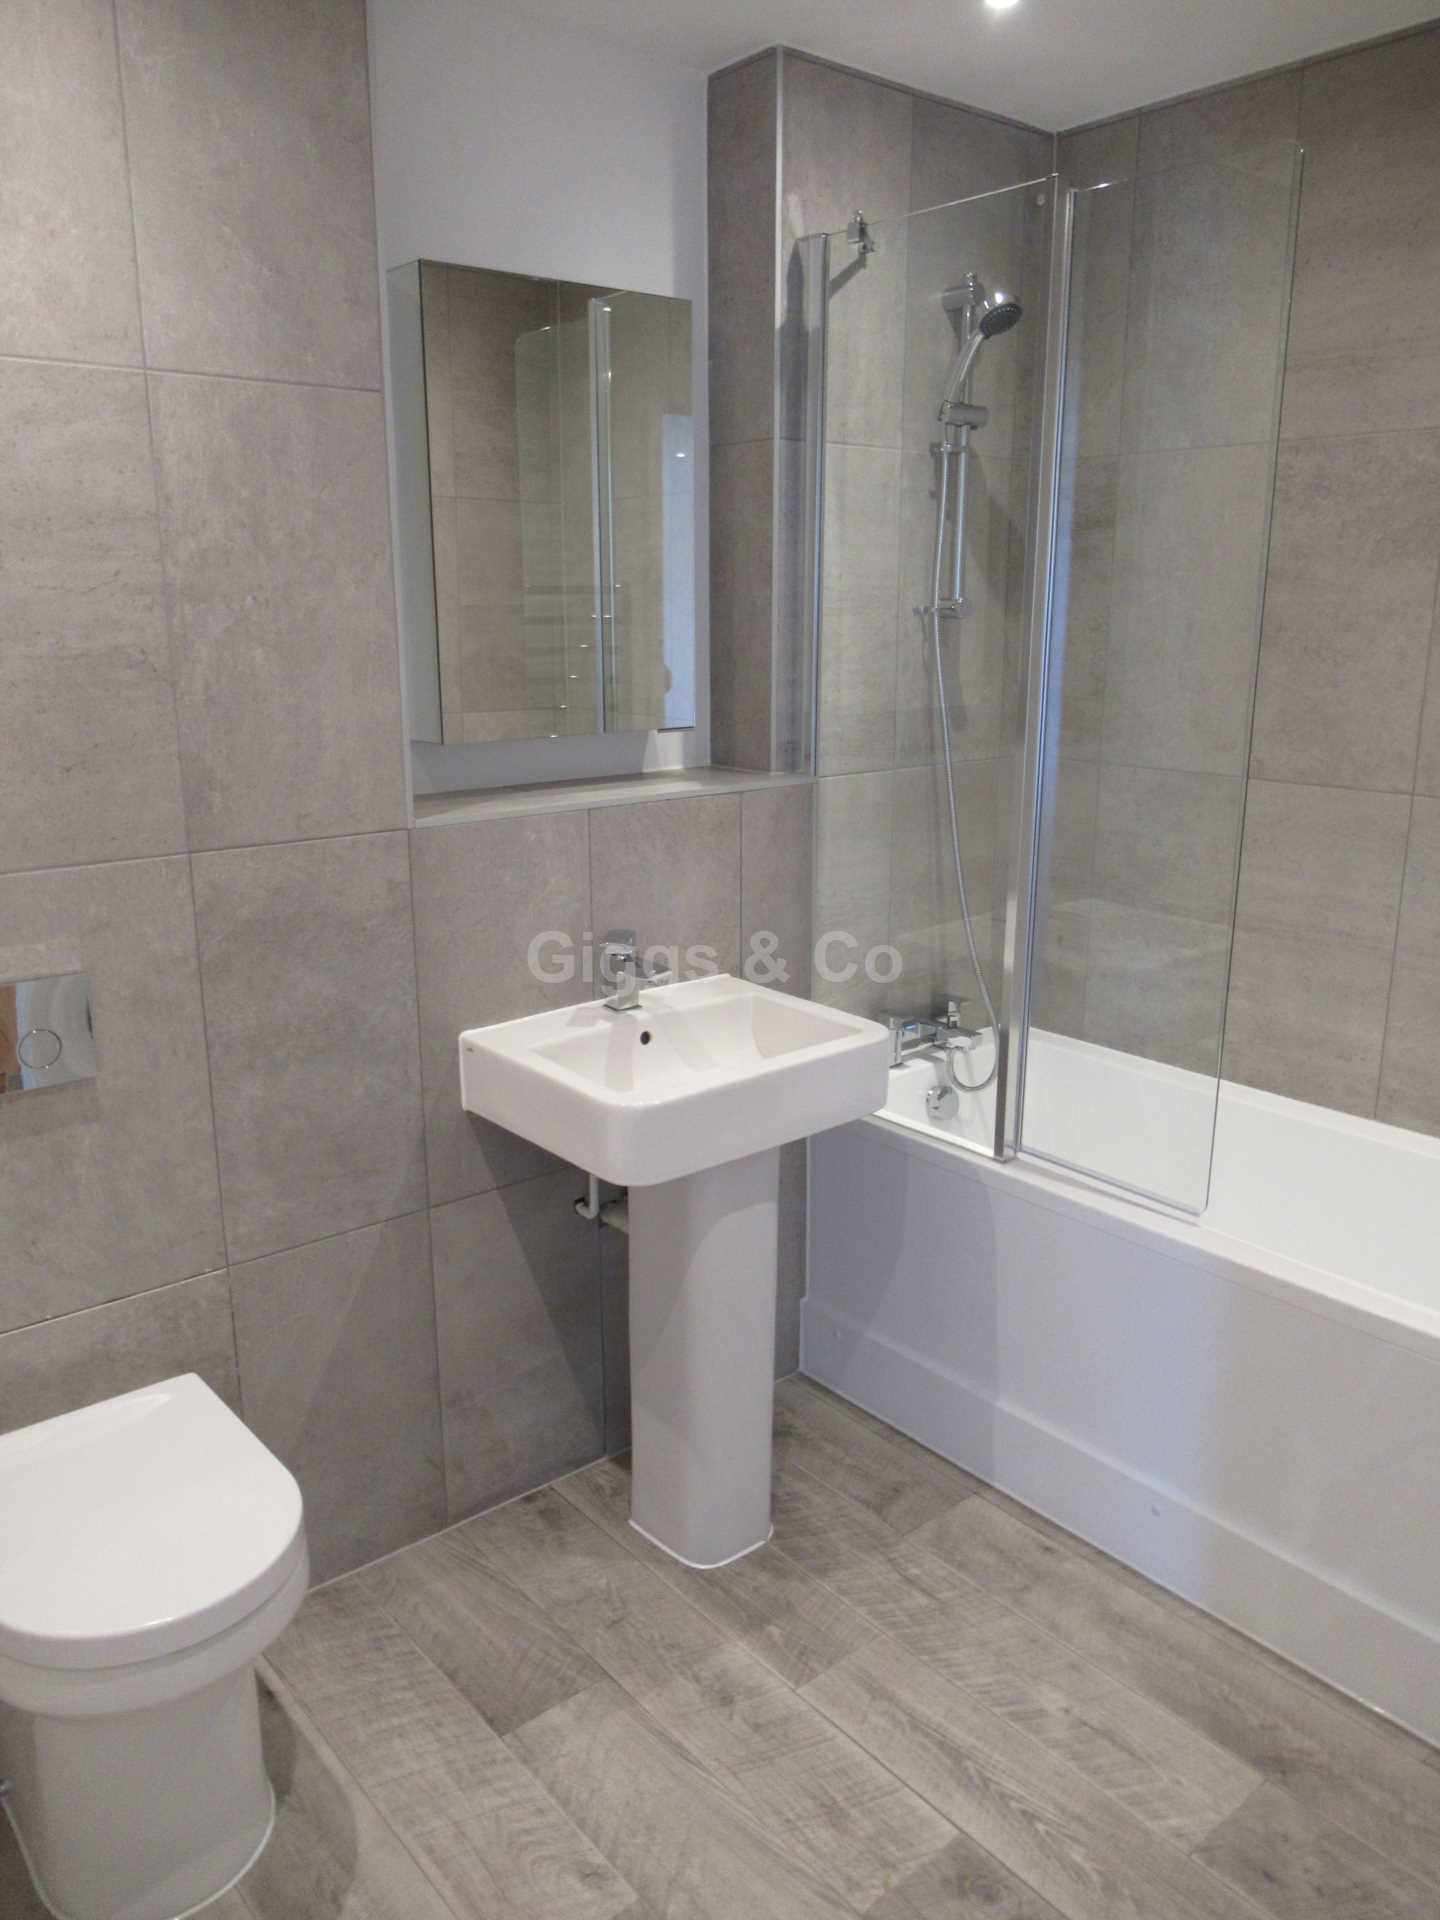 1 bed apartment to rent in Drovers Place, Huntingdon  - Property Image 6